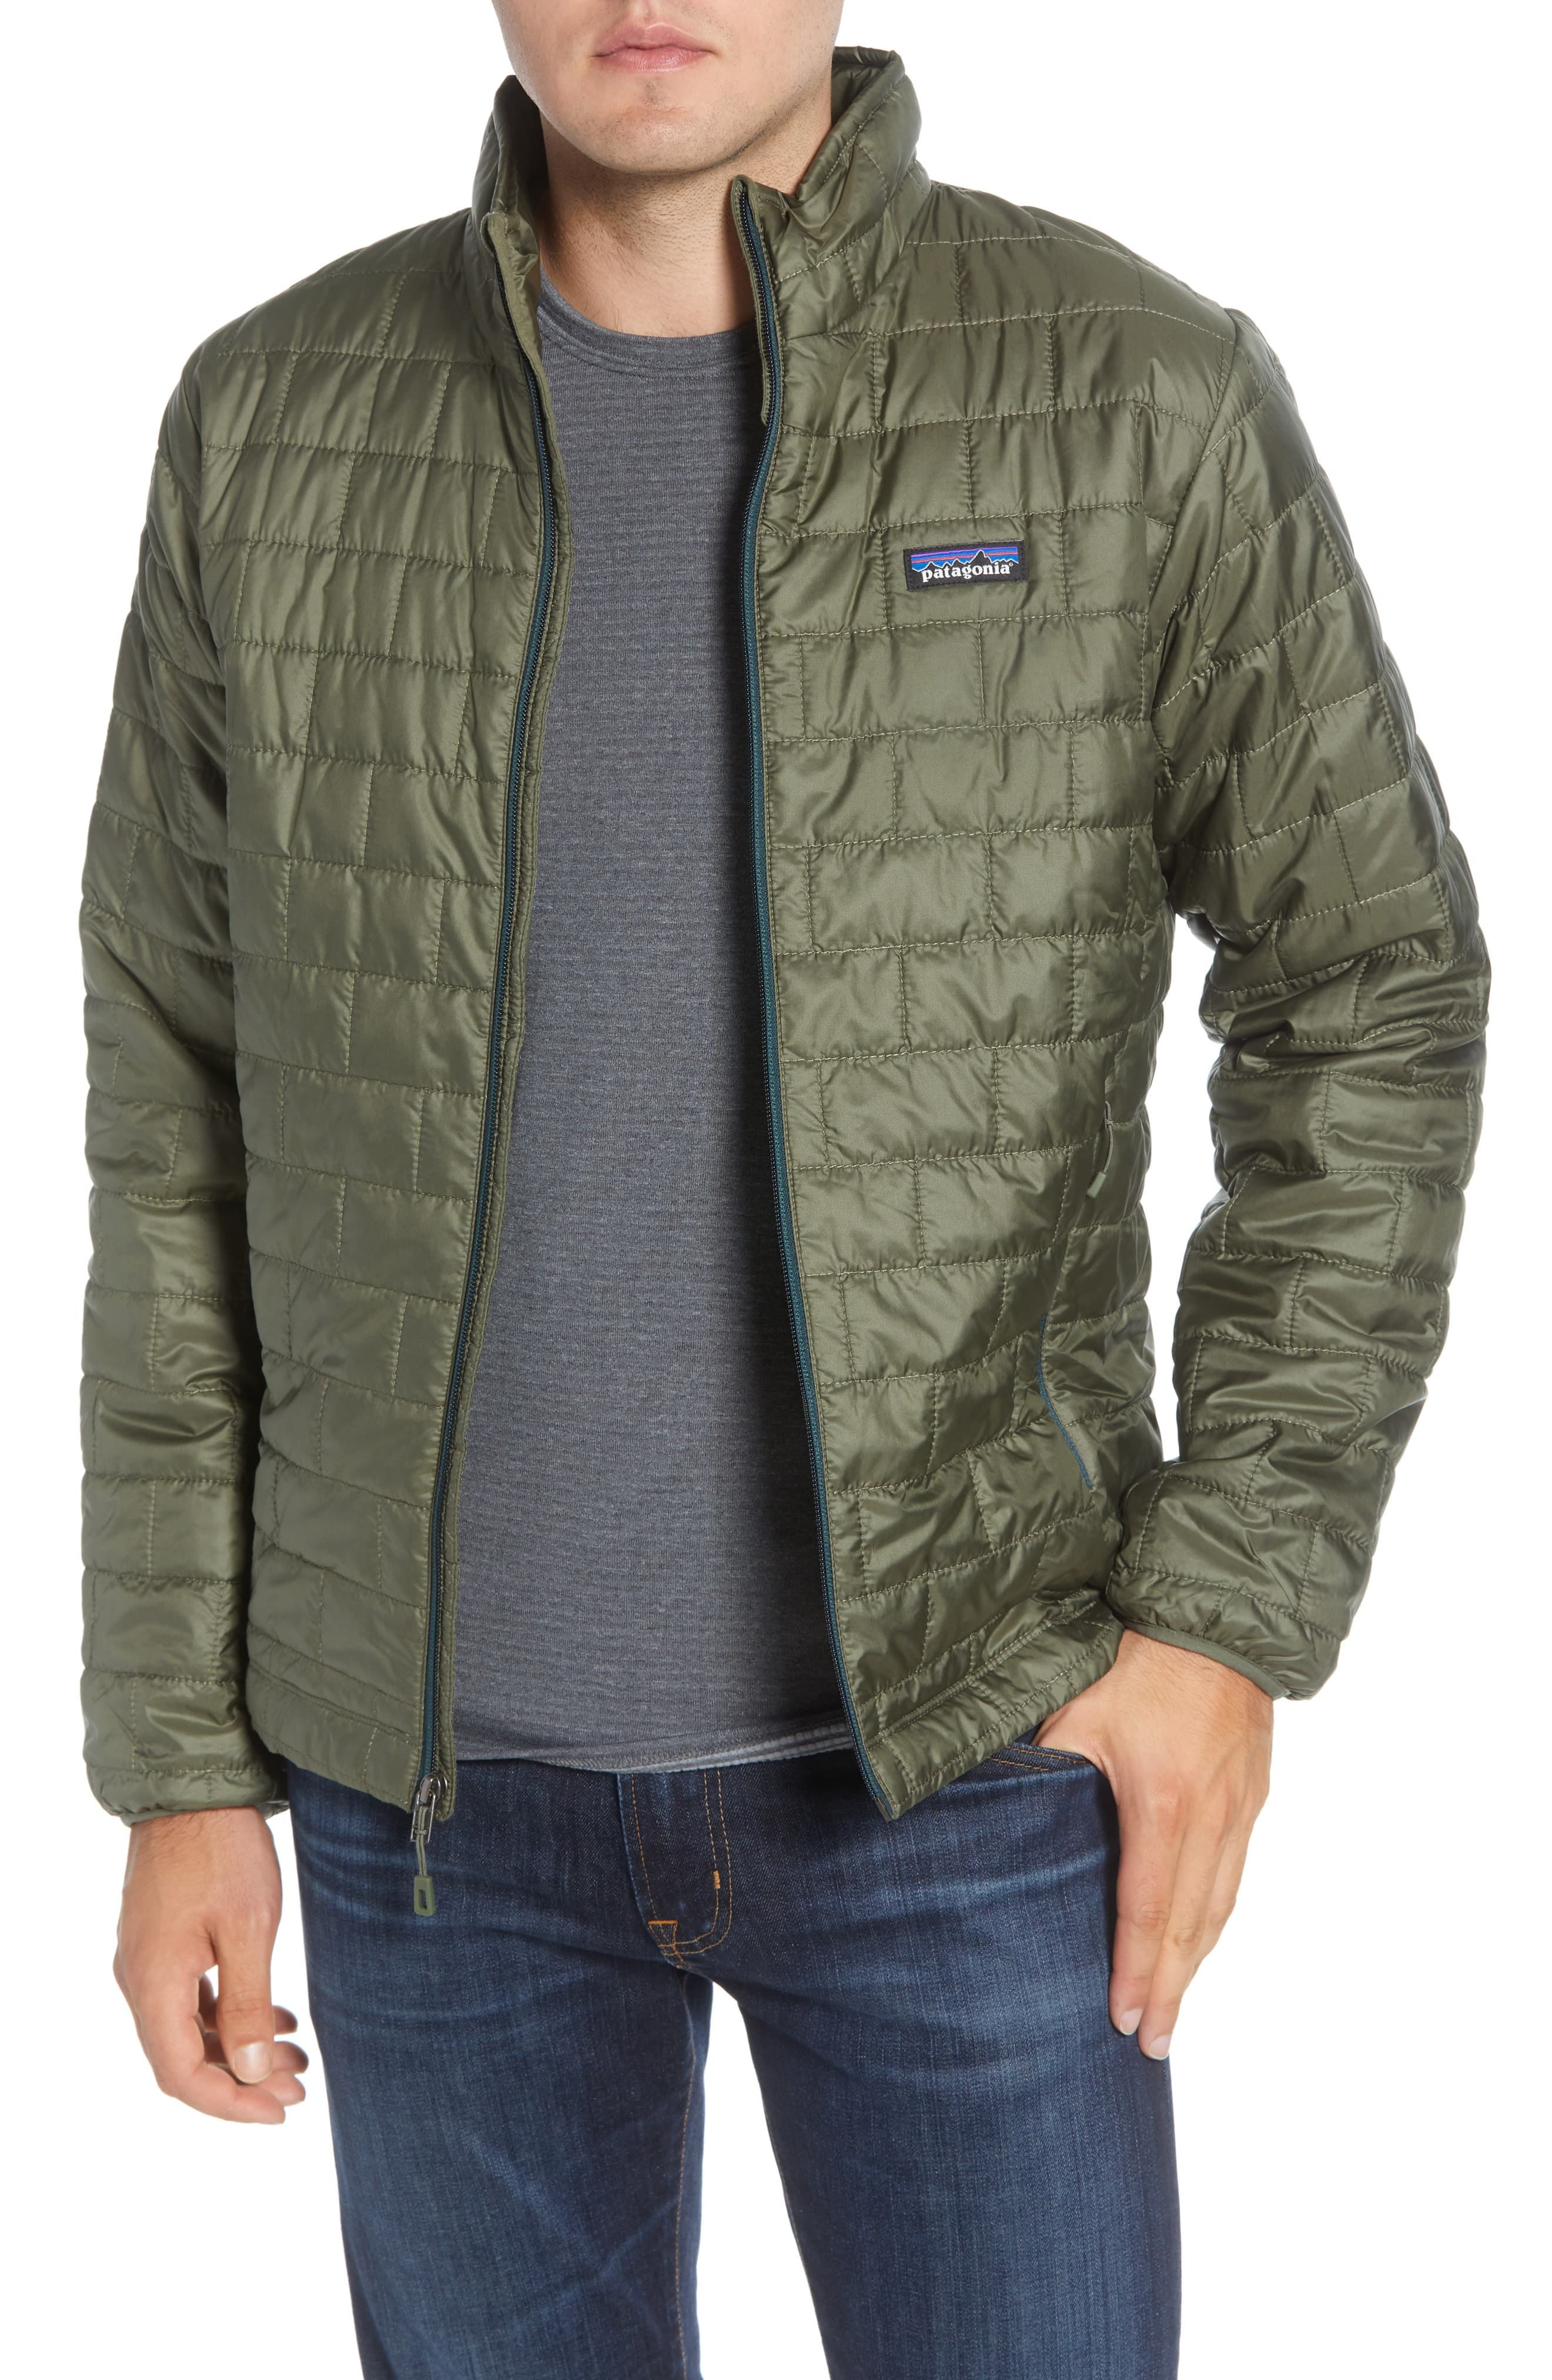 Patagonia Nano Puff Water Resistant Jacket Nordstrom Water Resistant Jacket Patagonia Nano Puff Lightweight Quilted Jacket [ 4048 x 2640 Pixel ]